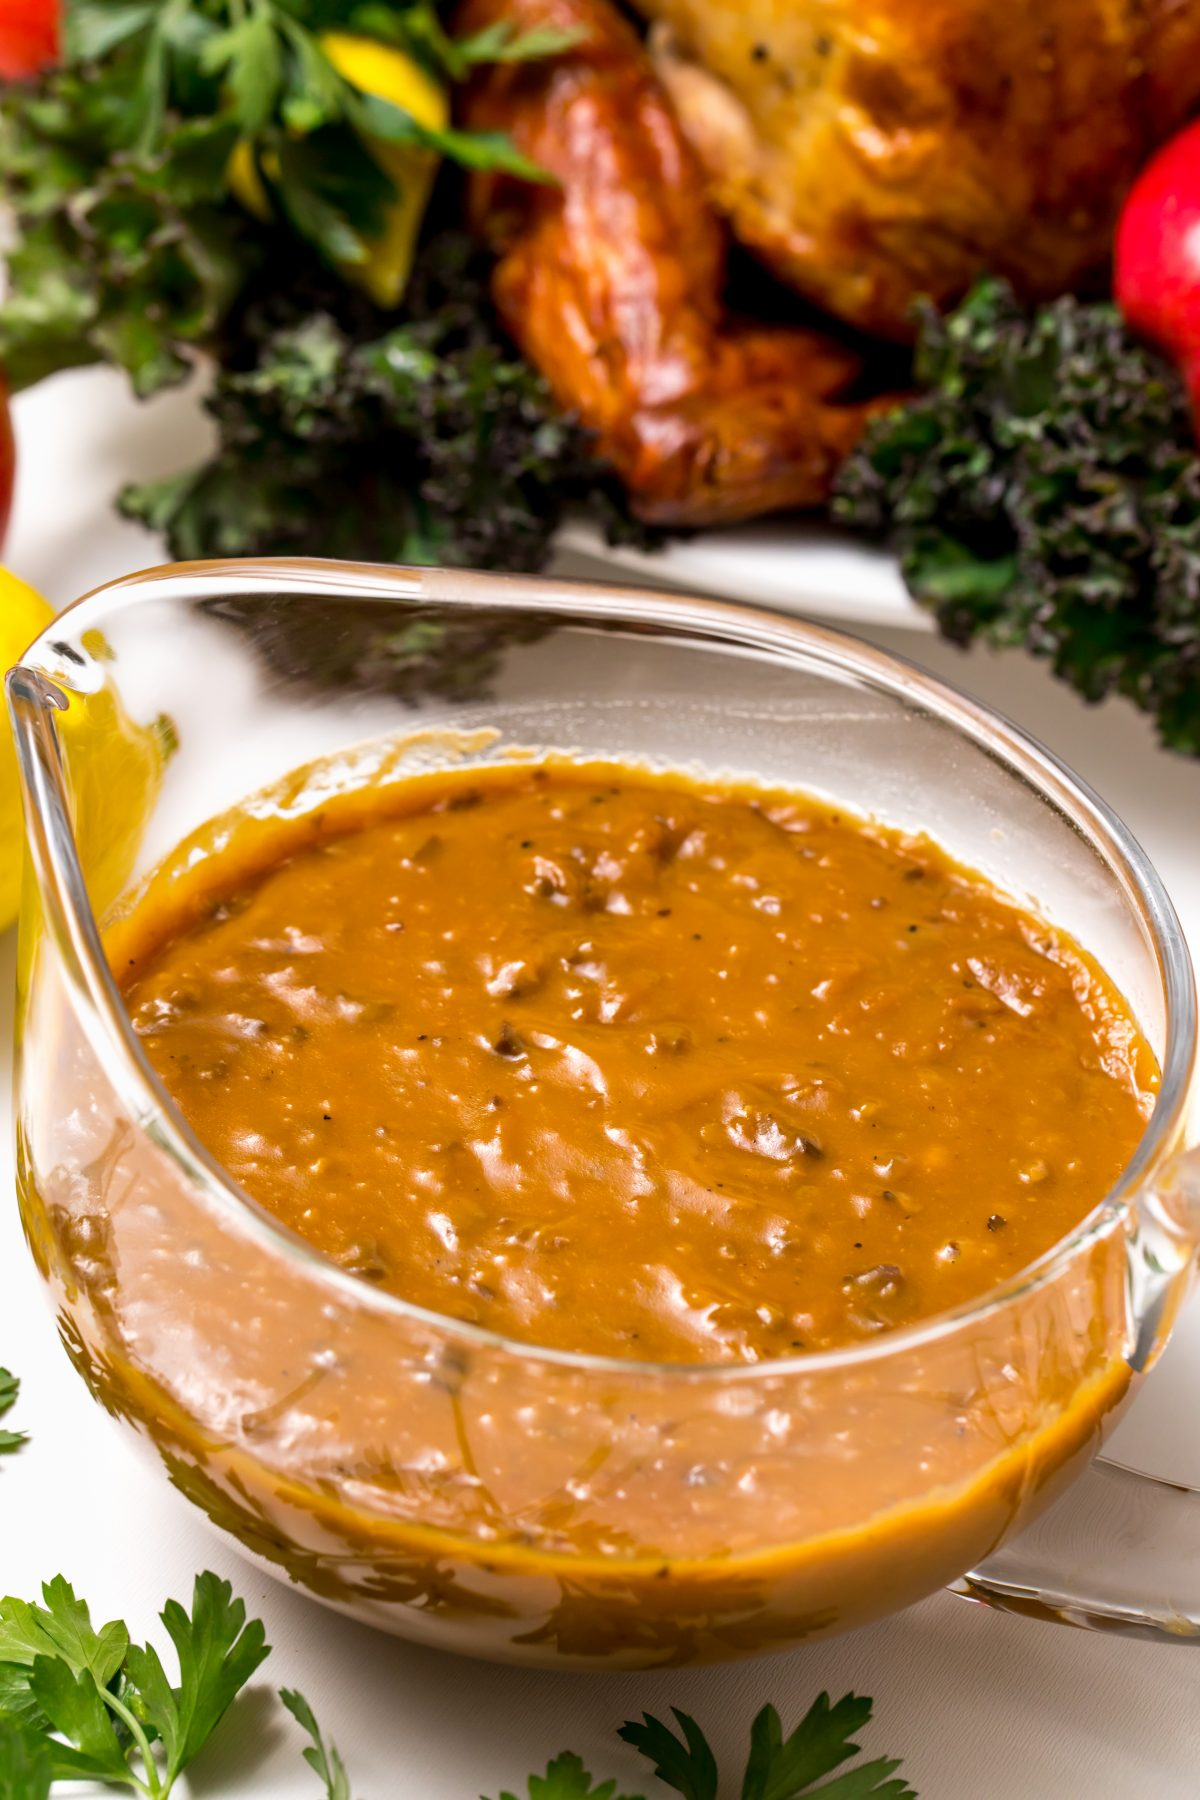 5D4B3268 - James Beard Roasted Turkey - Savory and classic gravy to complete the meal!